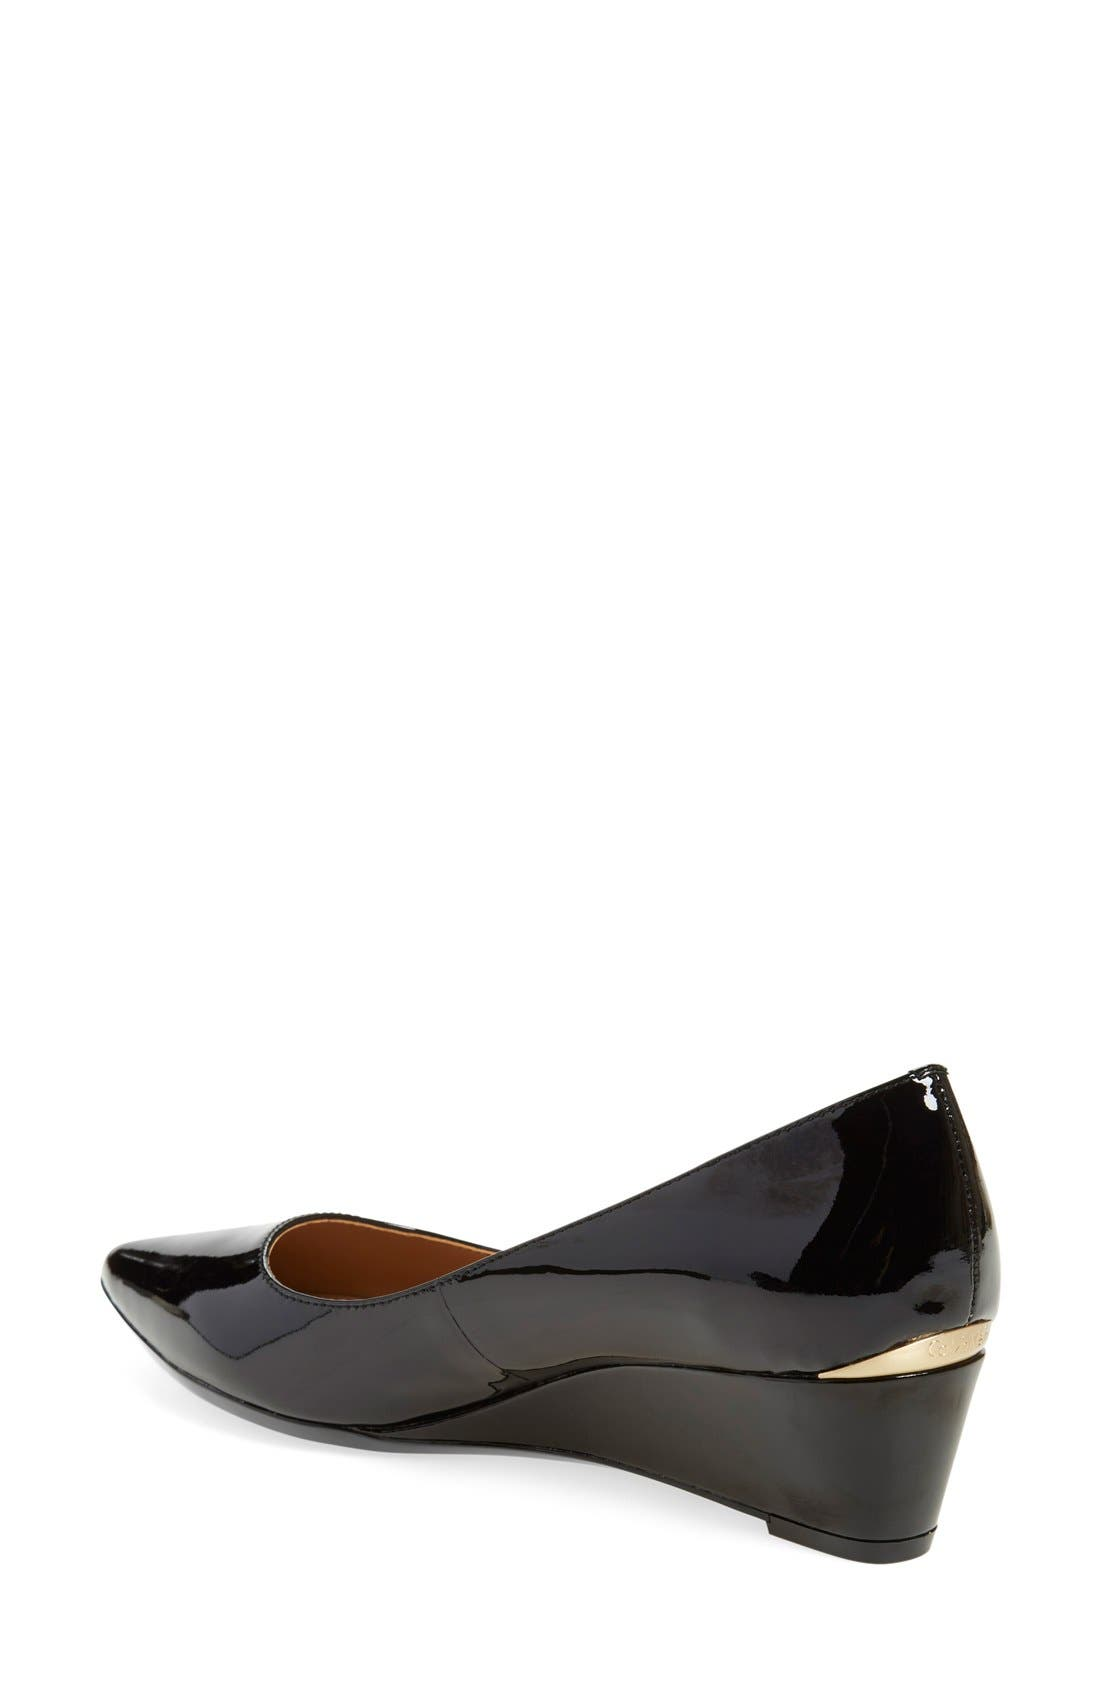 CALVIN KLEIN,                             'Germina' Pointy Toe Wedge,                             Alternate thumbnail 2, color,                             BLACK PATENT LEATHER